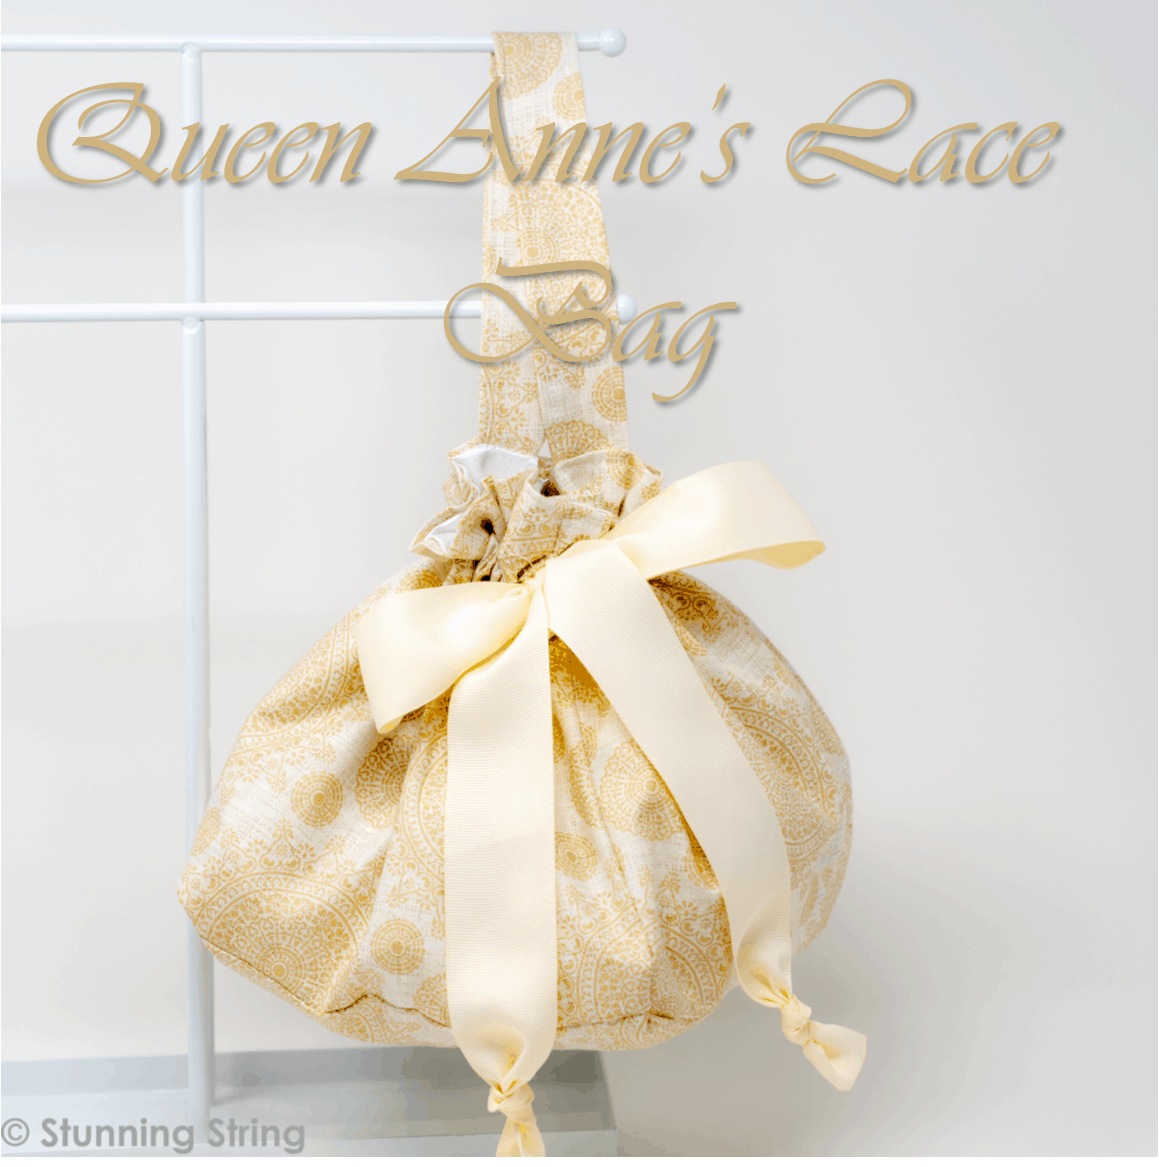 Queen Anne's Lace - Small Batch Kit